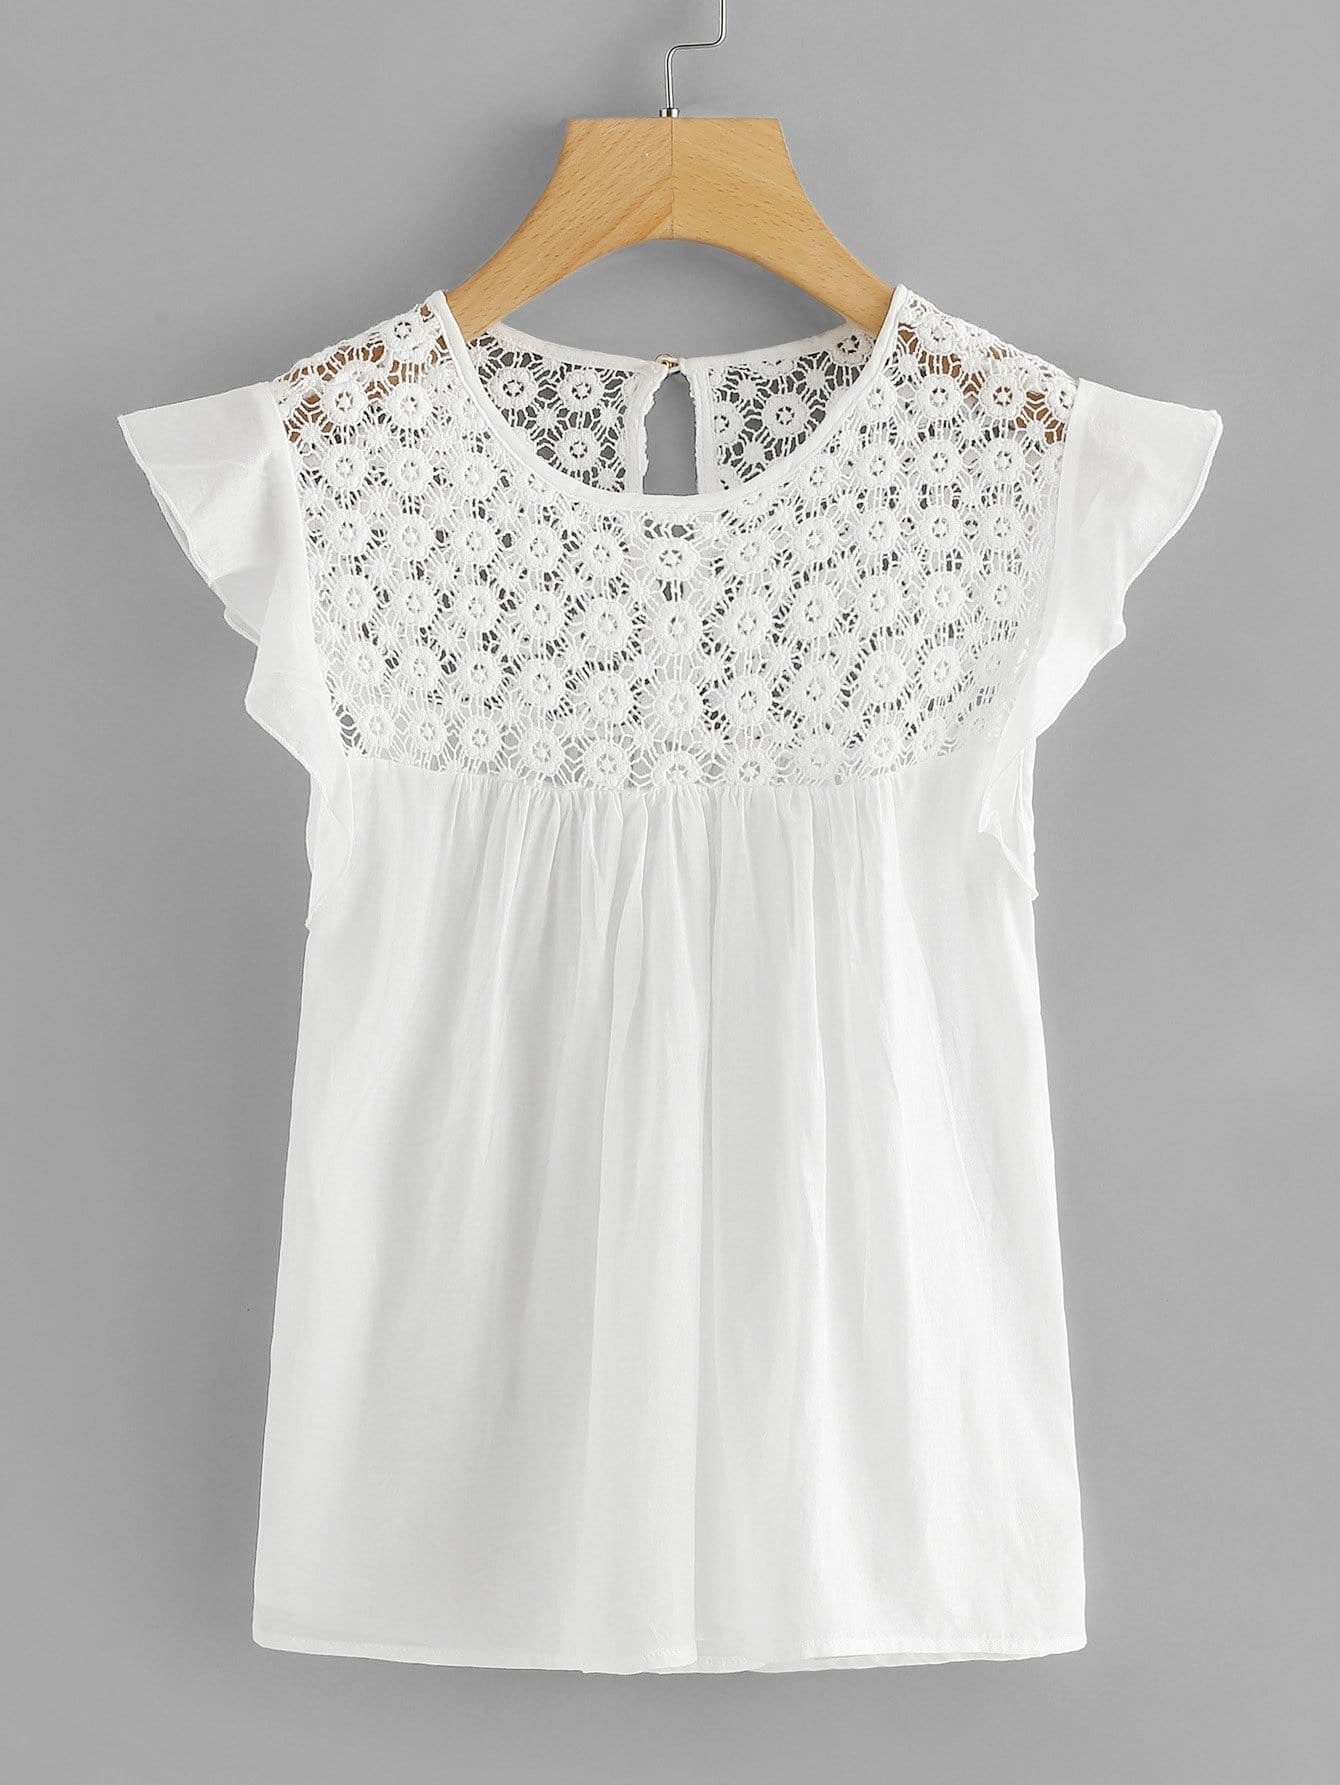 Hollow Crochet Frill Top frill detail crochet insert embroidered mesh top